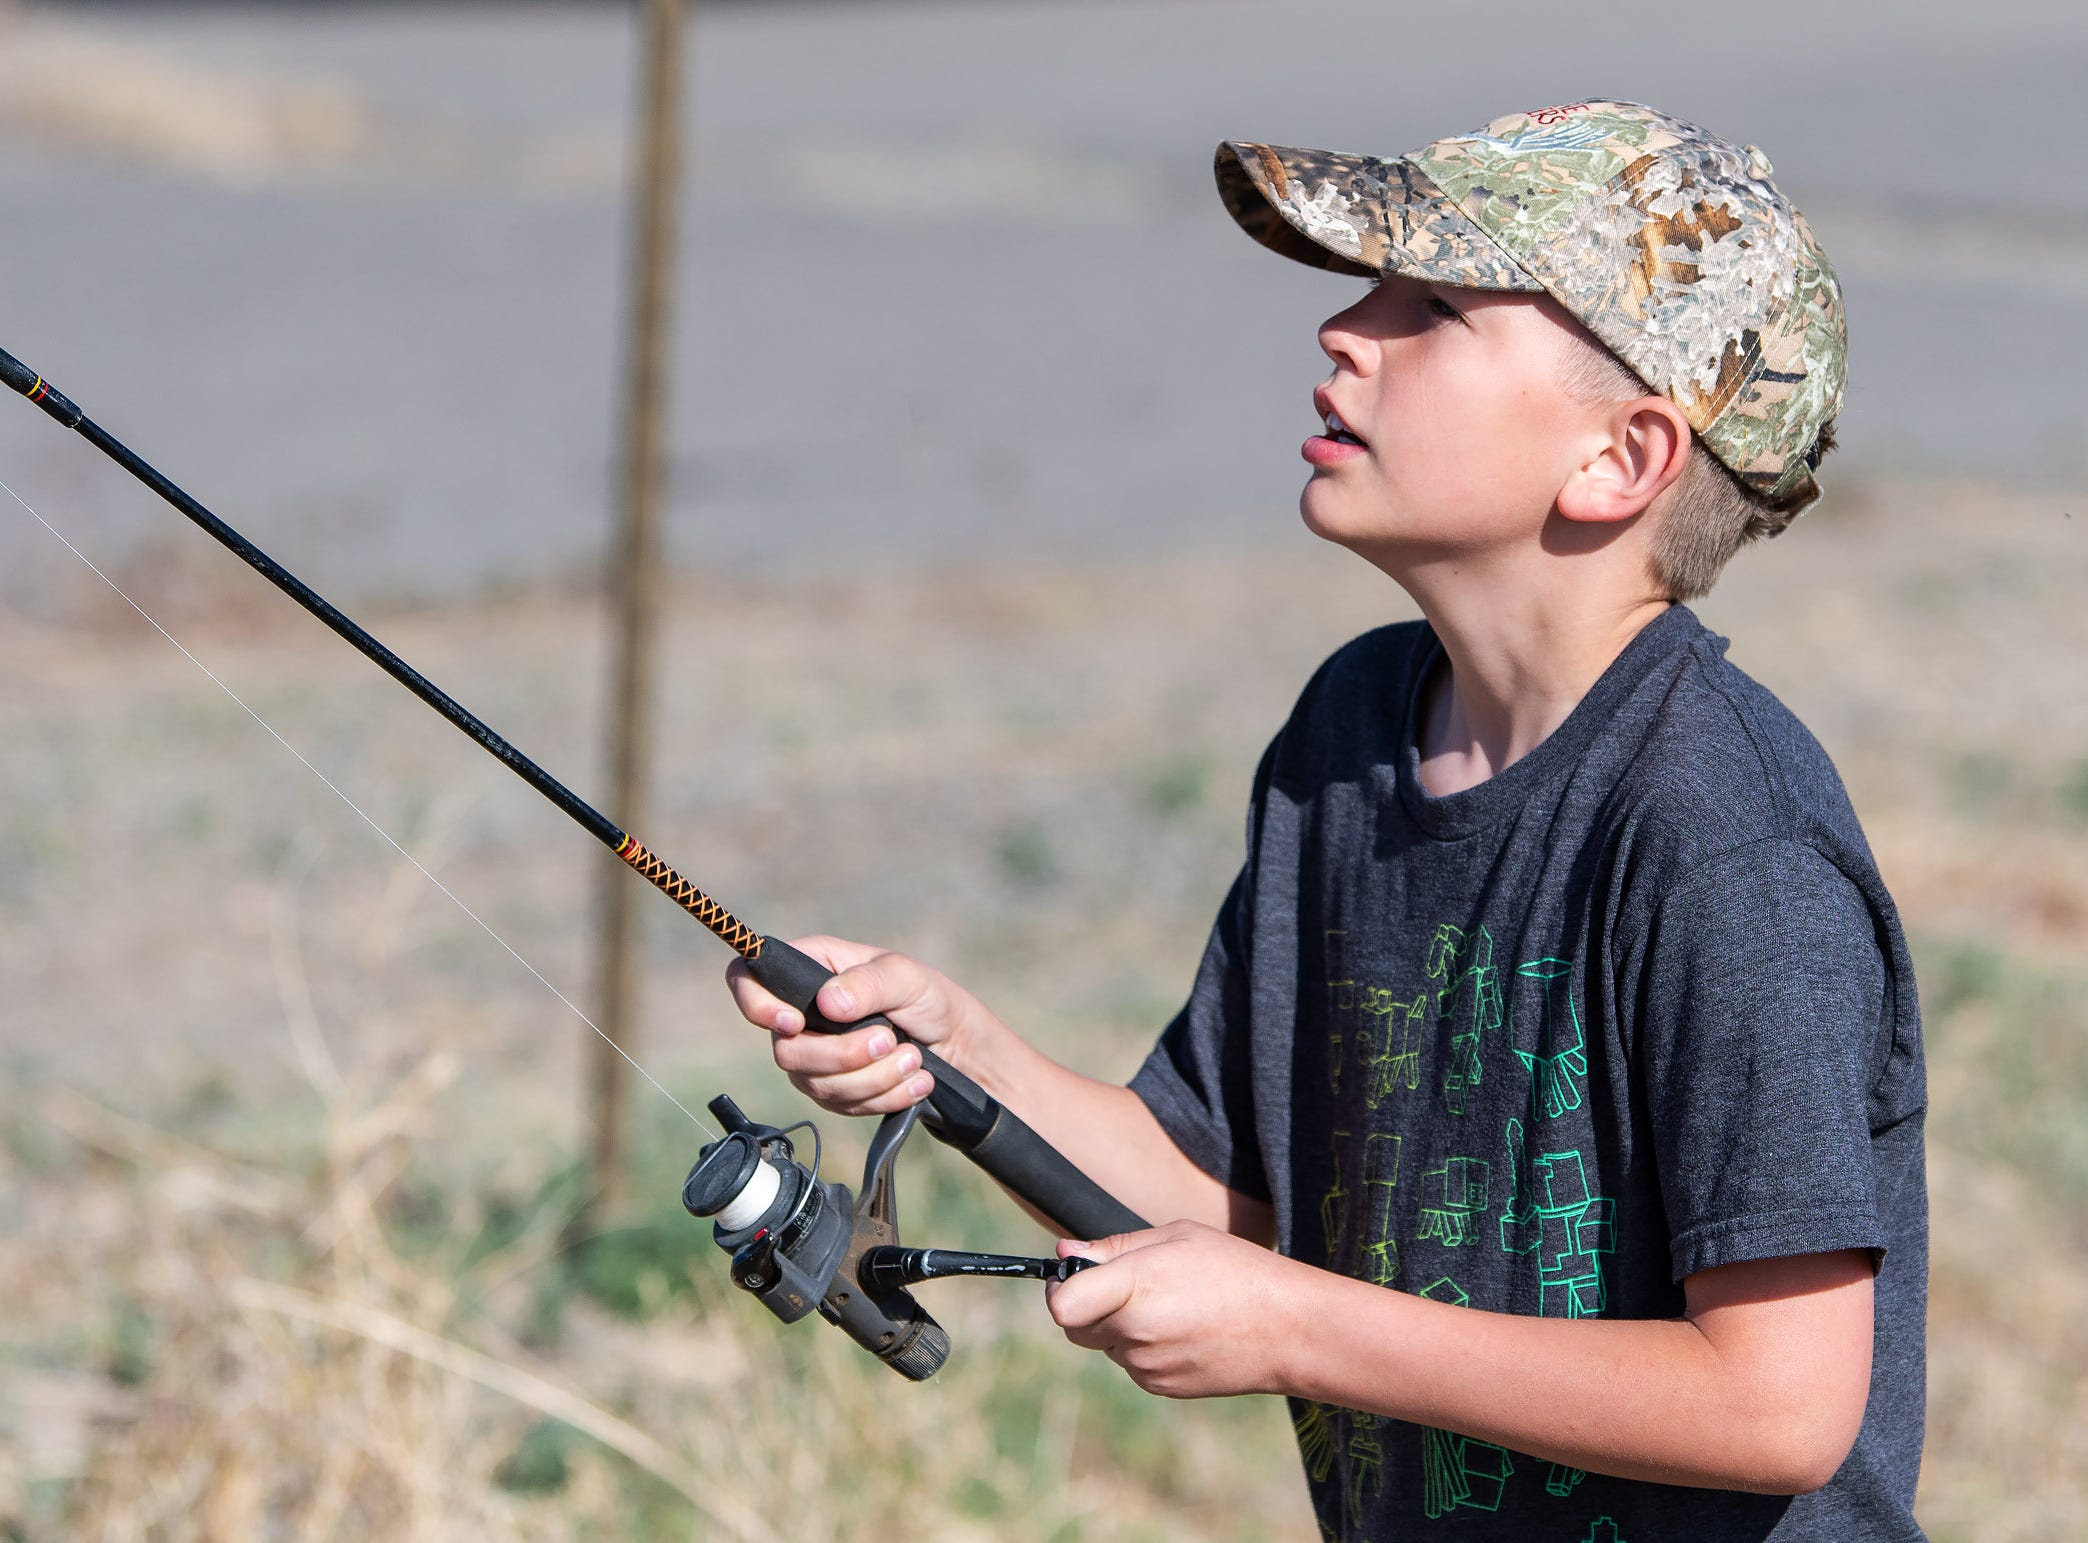 Justice Hanson, 10, from Yerington, reels in his line.